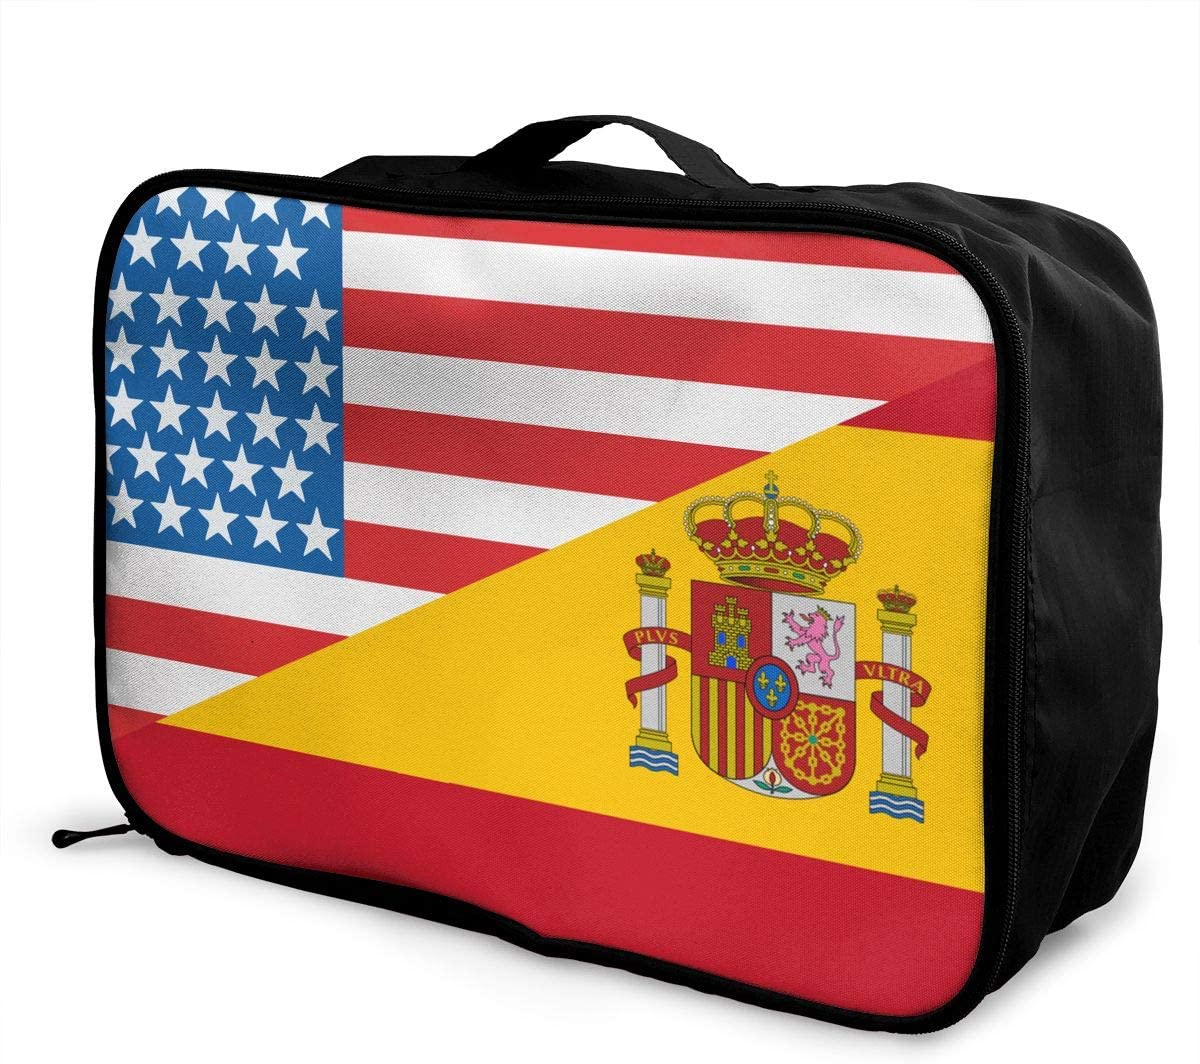 Half USA Half Spain Flag Overnight Carry On Luggage Waterproof Fashion Travel Bag Lightweight Suitcases